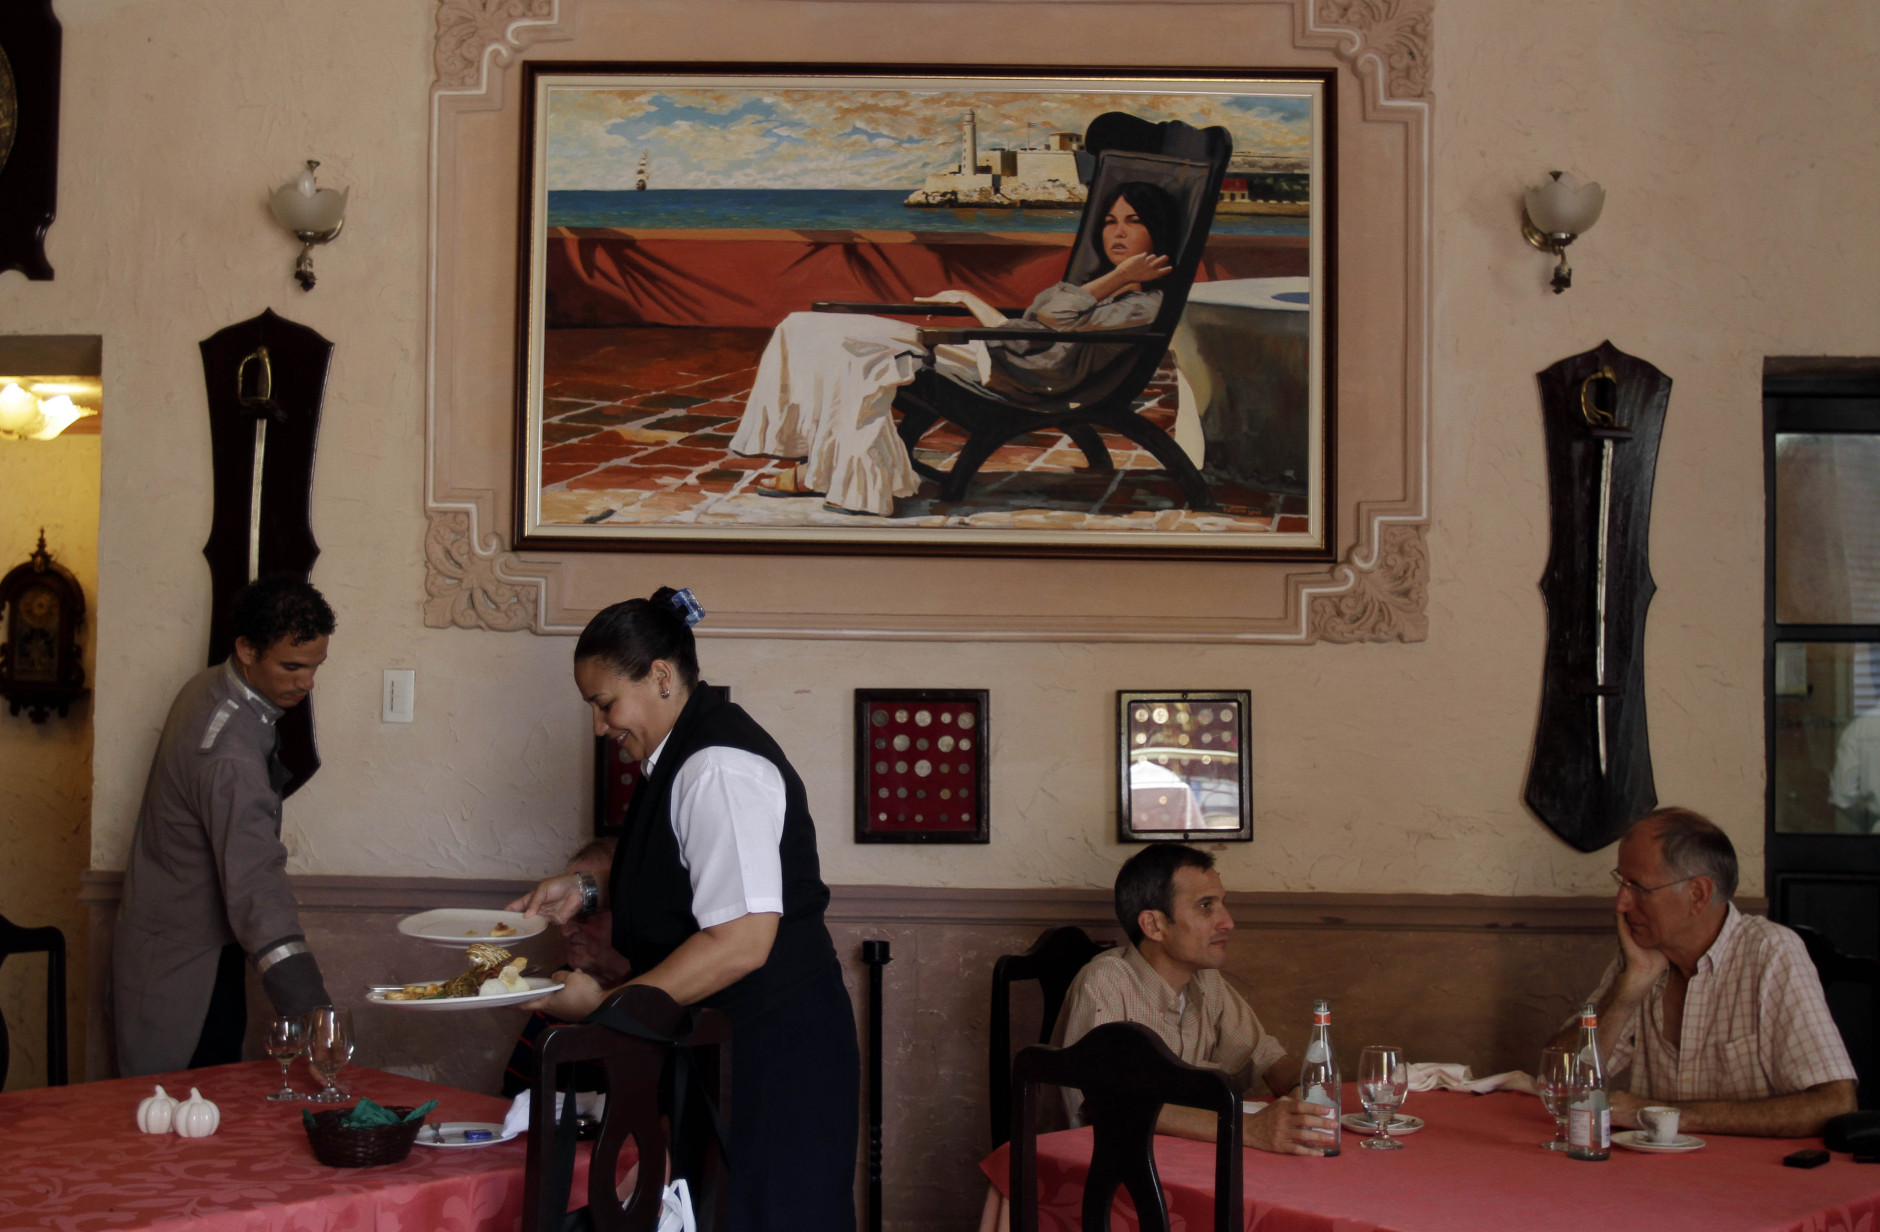 """In this photo taken Friday, April 29, 2011, wait staff attend to customers at """"La Moneda Cubana,"""" a private restaurant in Old Havana, Cuba. A restaurant boom is sweeping Havana under new rules that make it easier to run """"paladars,"""" with a wave of new private eateries opening since January 2011. (AP Photo/Franklin Reyes)"""